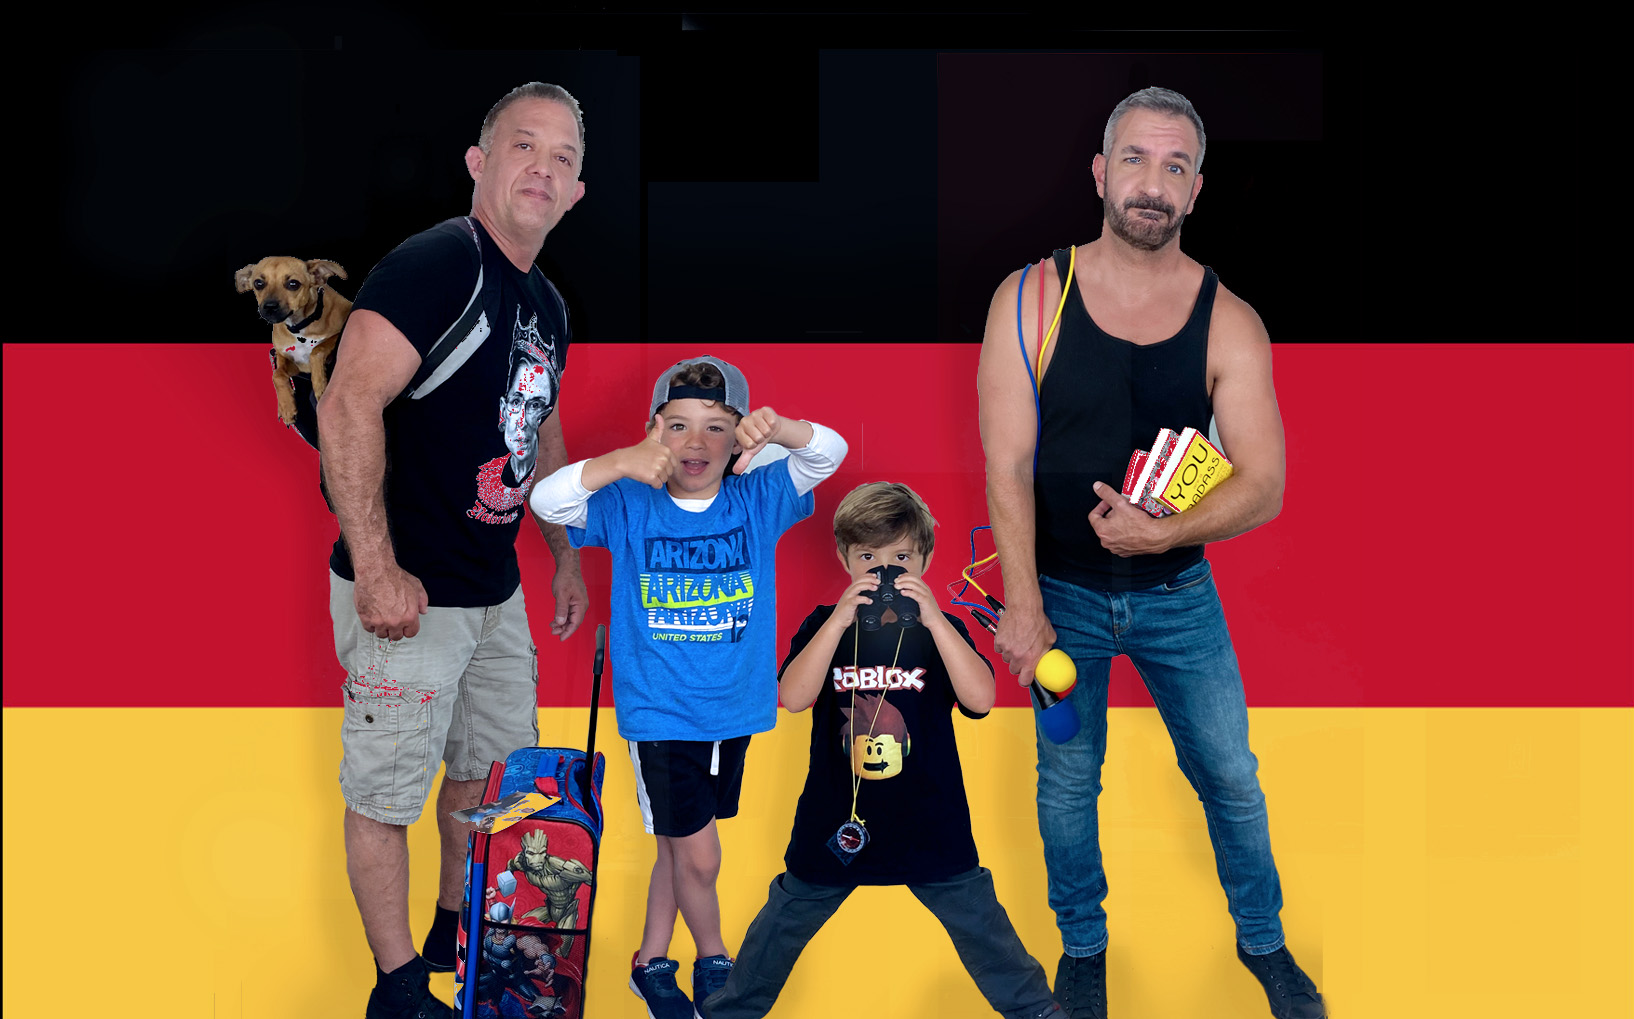 Daddy Squared Around the World: Germany